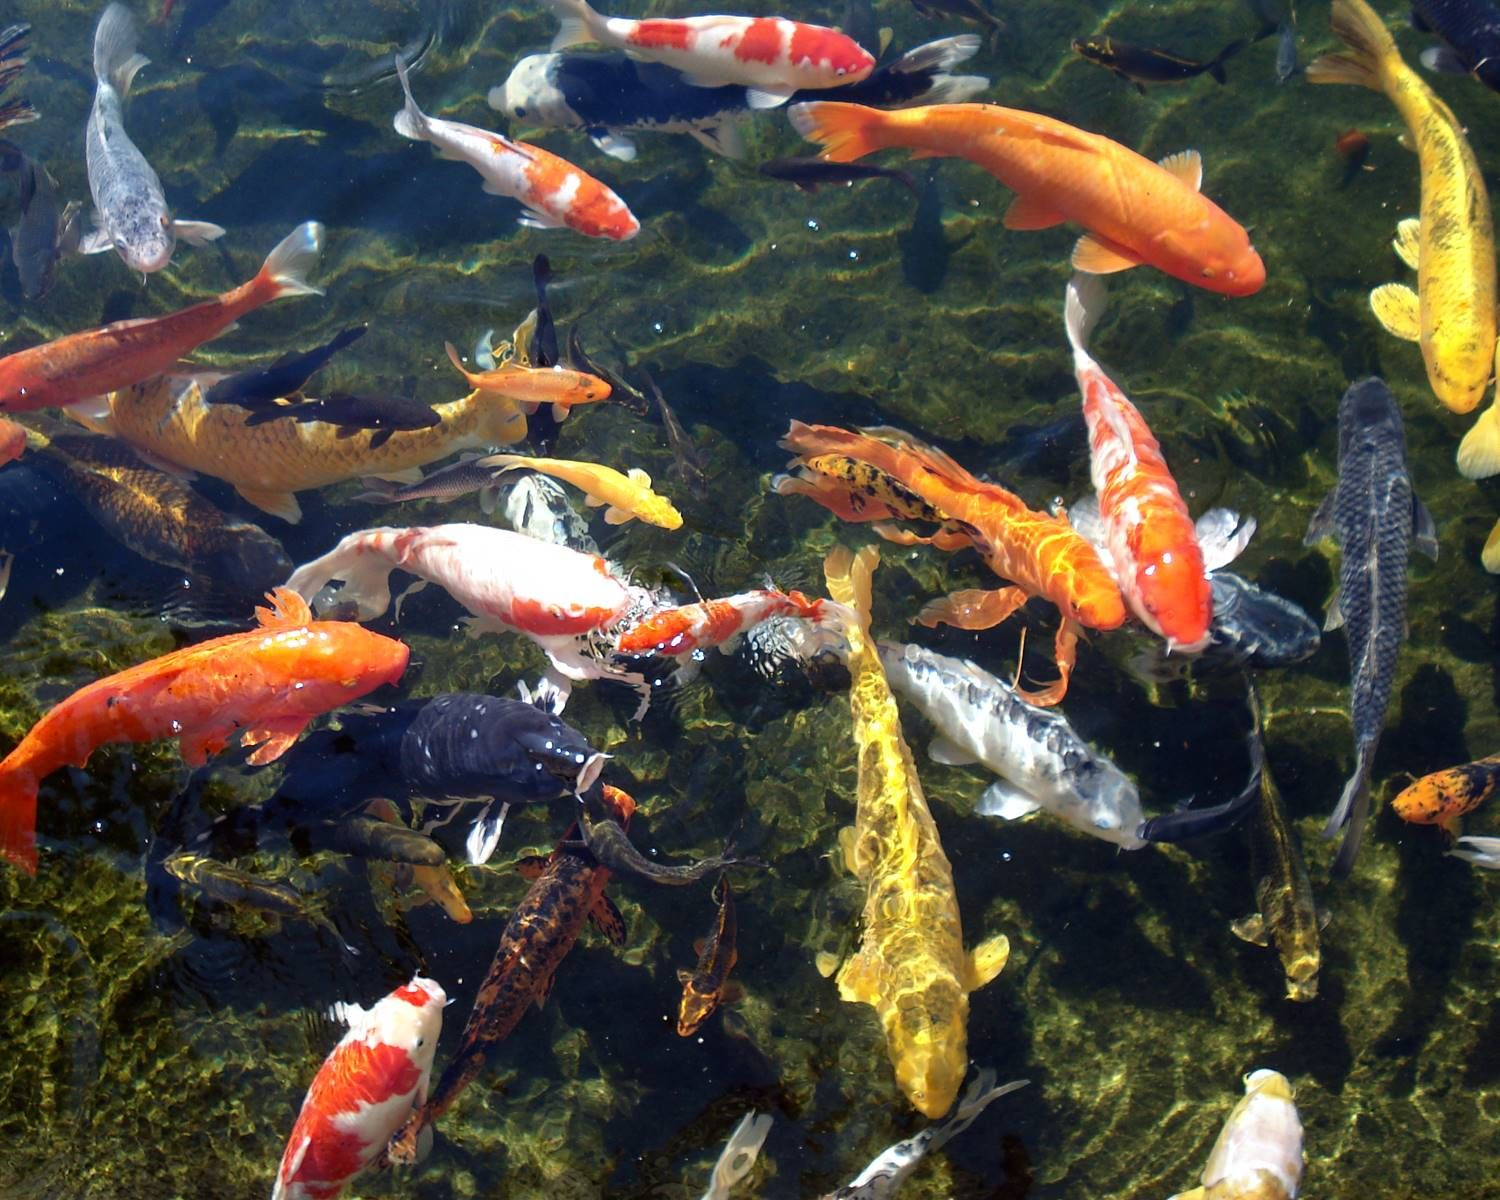 16 best Koi Pond images on Pinterest | Koi ponds, Fish ponds and ...